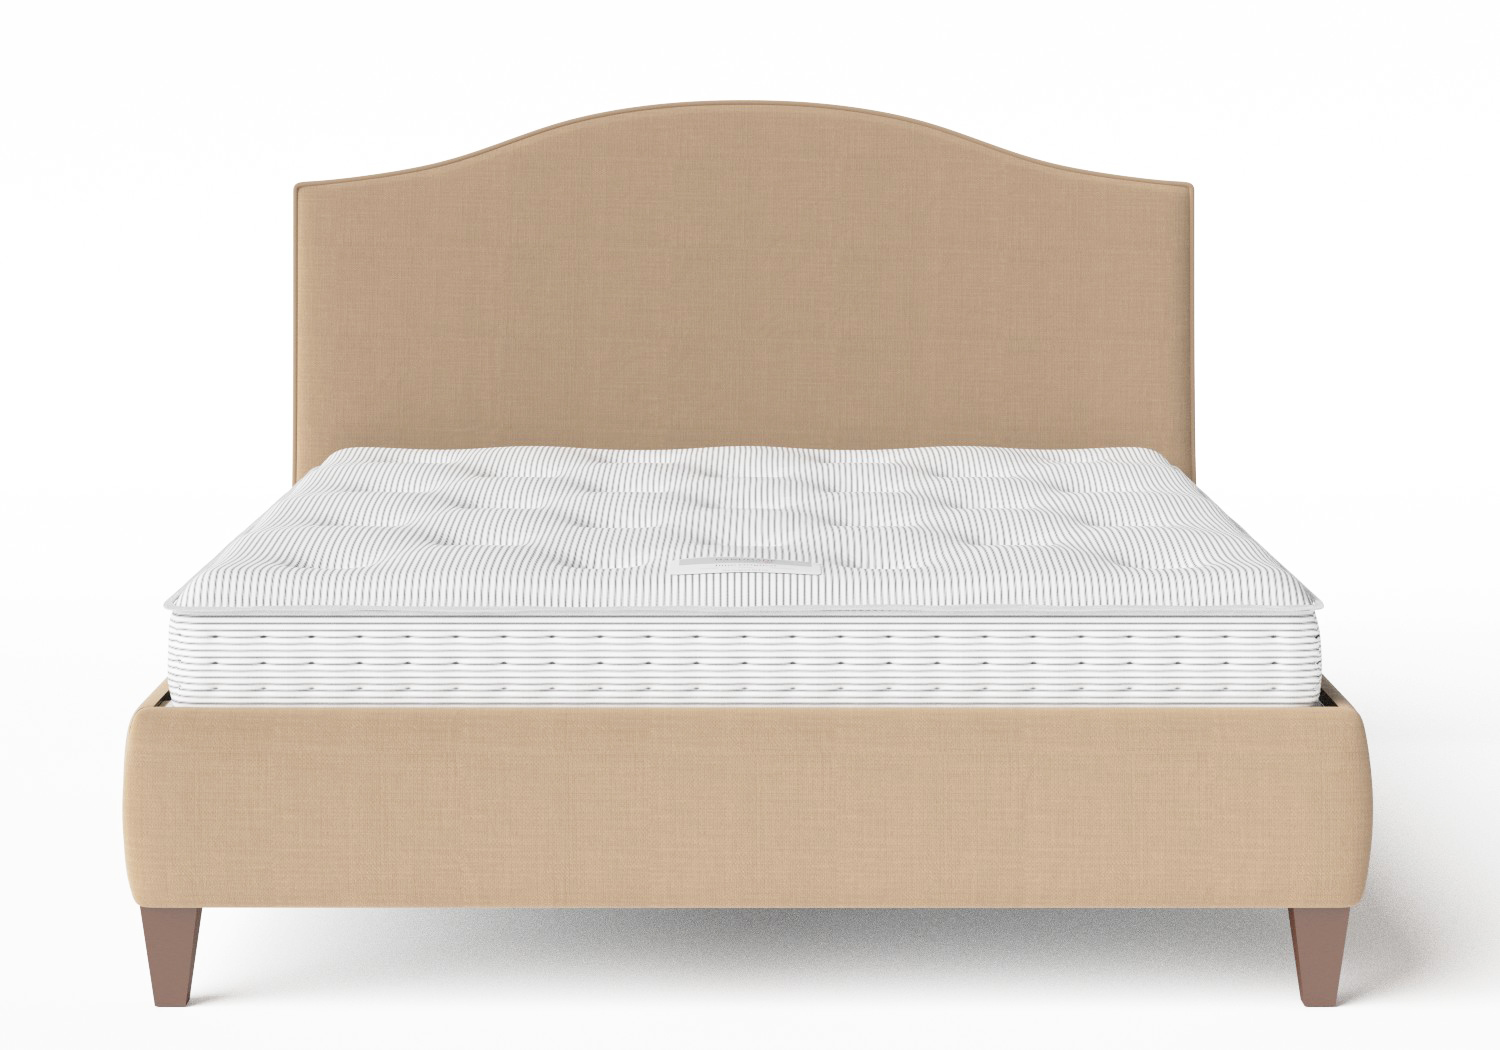 Daniella Upholstered bed in Straw fabric with piping shown with Juno 1 mattress